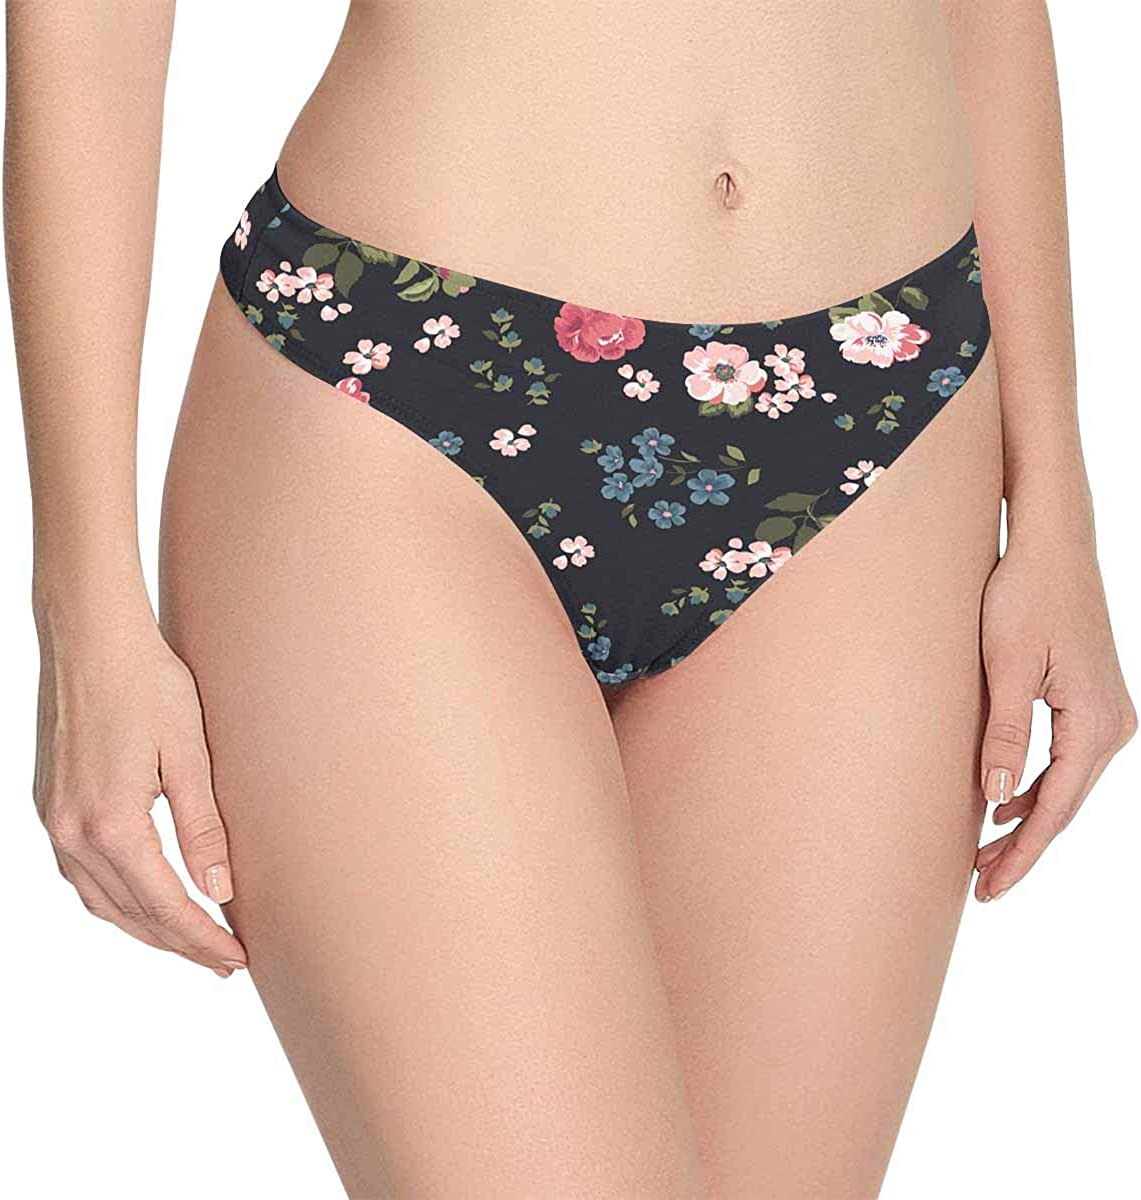 INTERESTPRINT Womens Thong Underwear Stretchy Panties Trendy Floral Pattern